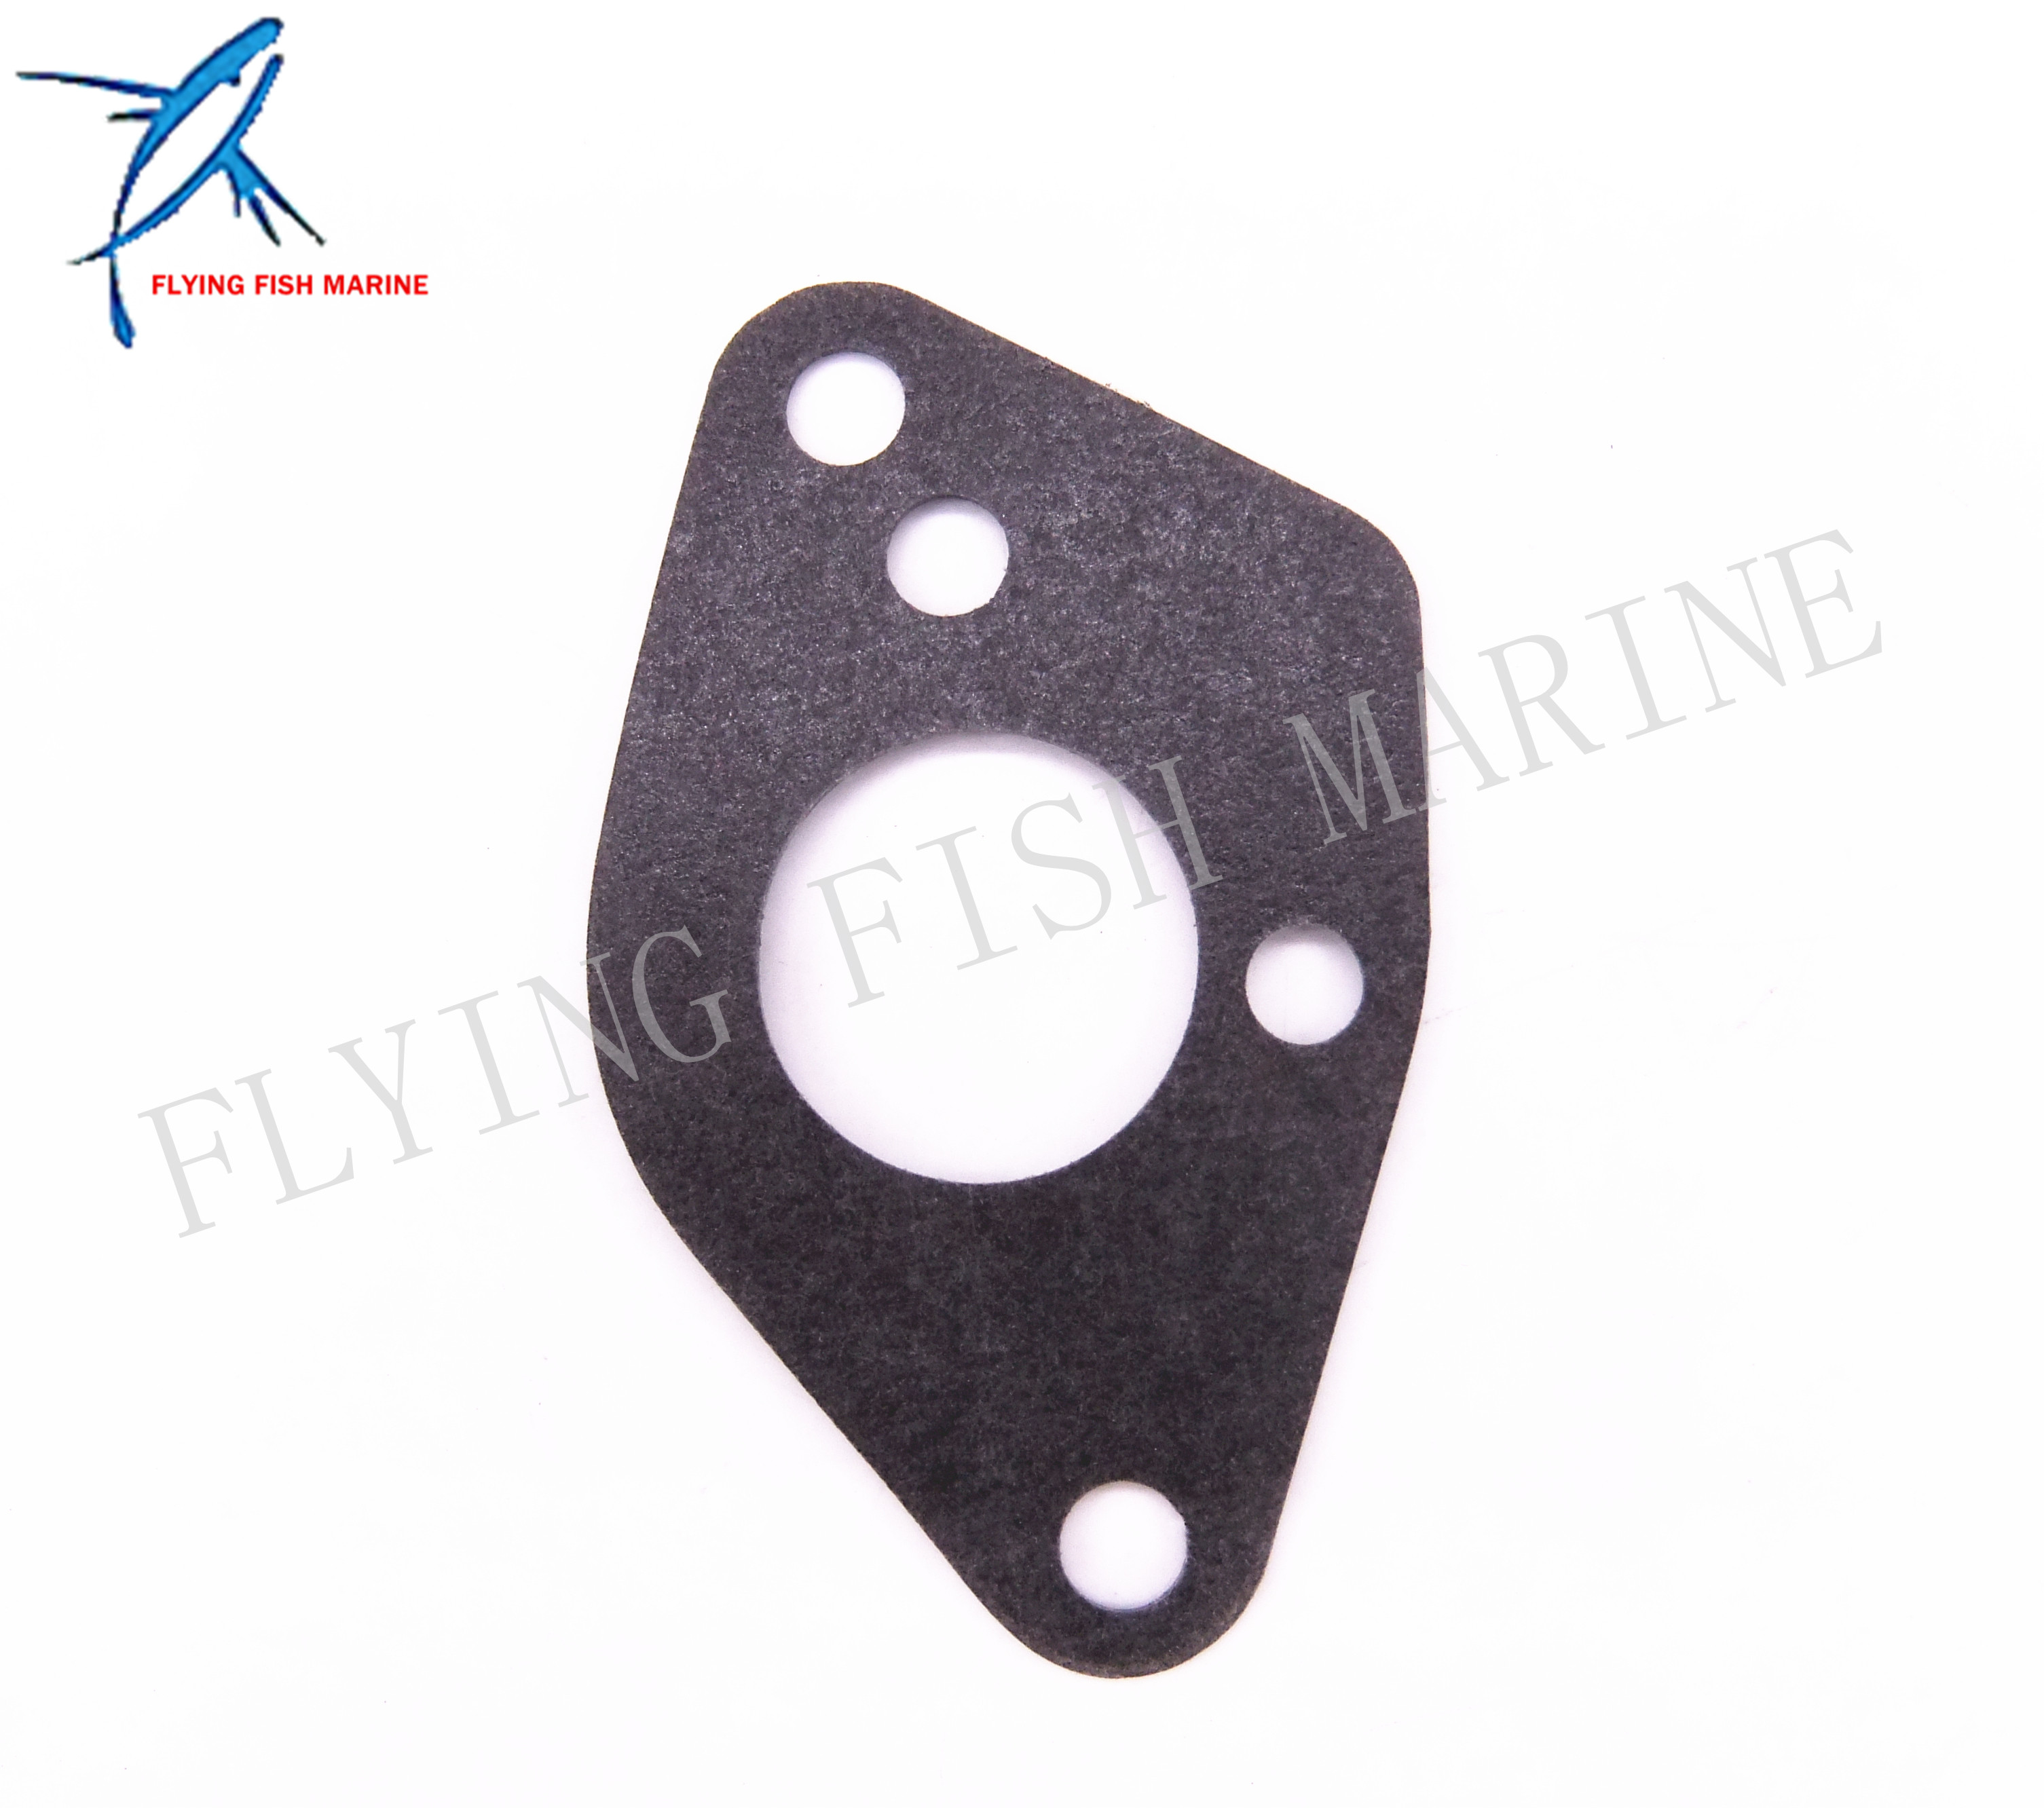 Outboard Engine 369-02011-0 36902-0110M Carburetor Gasket for Tohatsu Nissan 2-Stroke 6HP 8HP 9.8HP Boat Motor